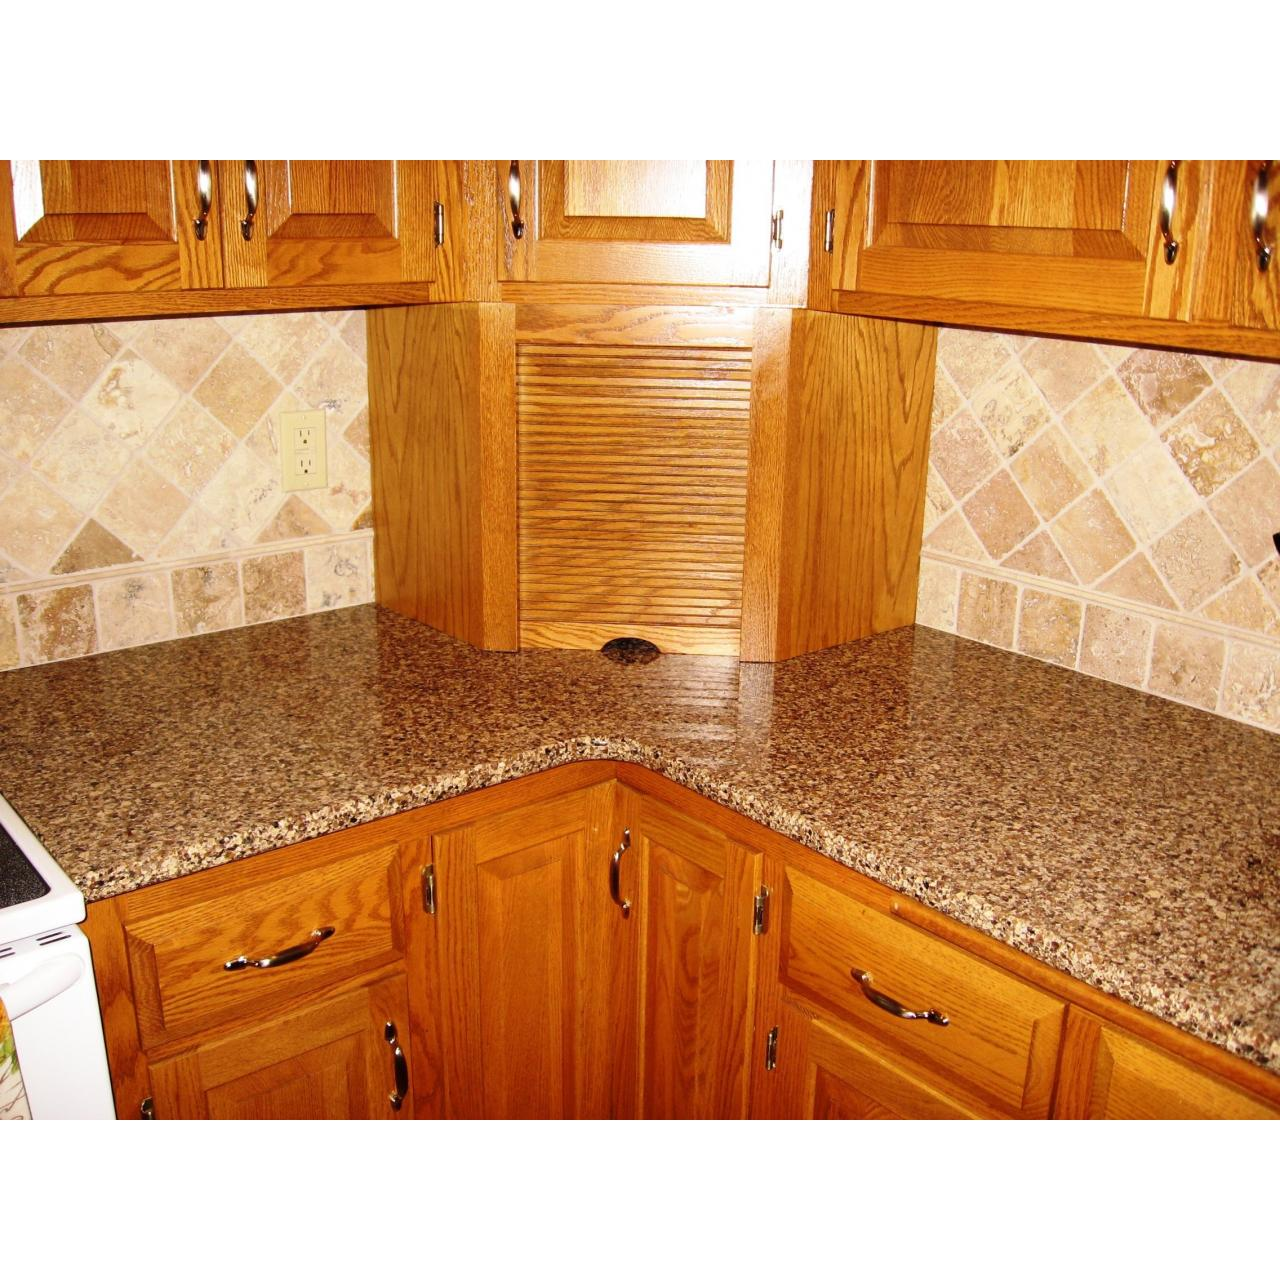 Best Raw Silk Granite (Kitchen Countertop) wholesale